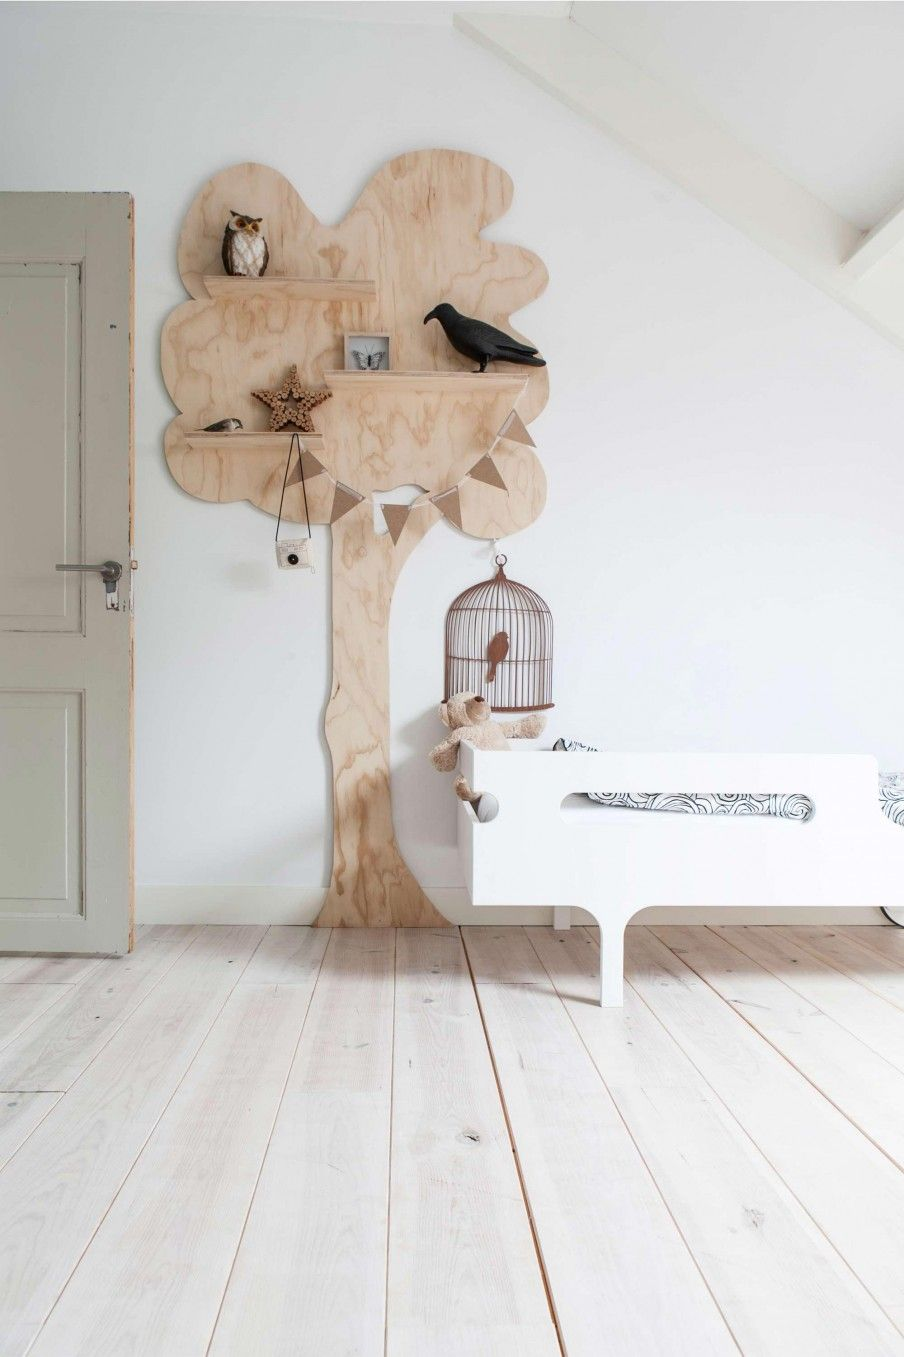 Decoratie Boom Kinderkamer.Kinderkamer Met Houten Decoratie Boom Kids Room With A Wooden